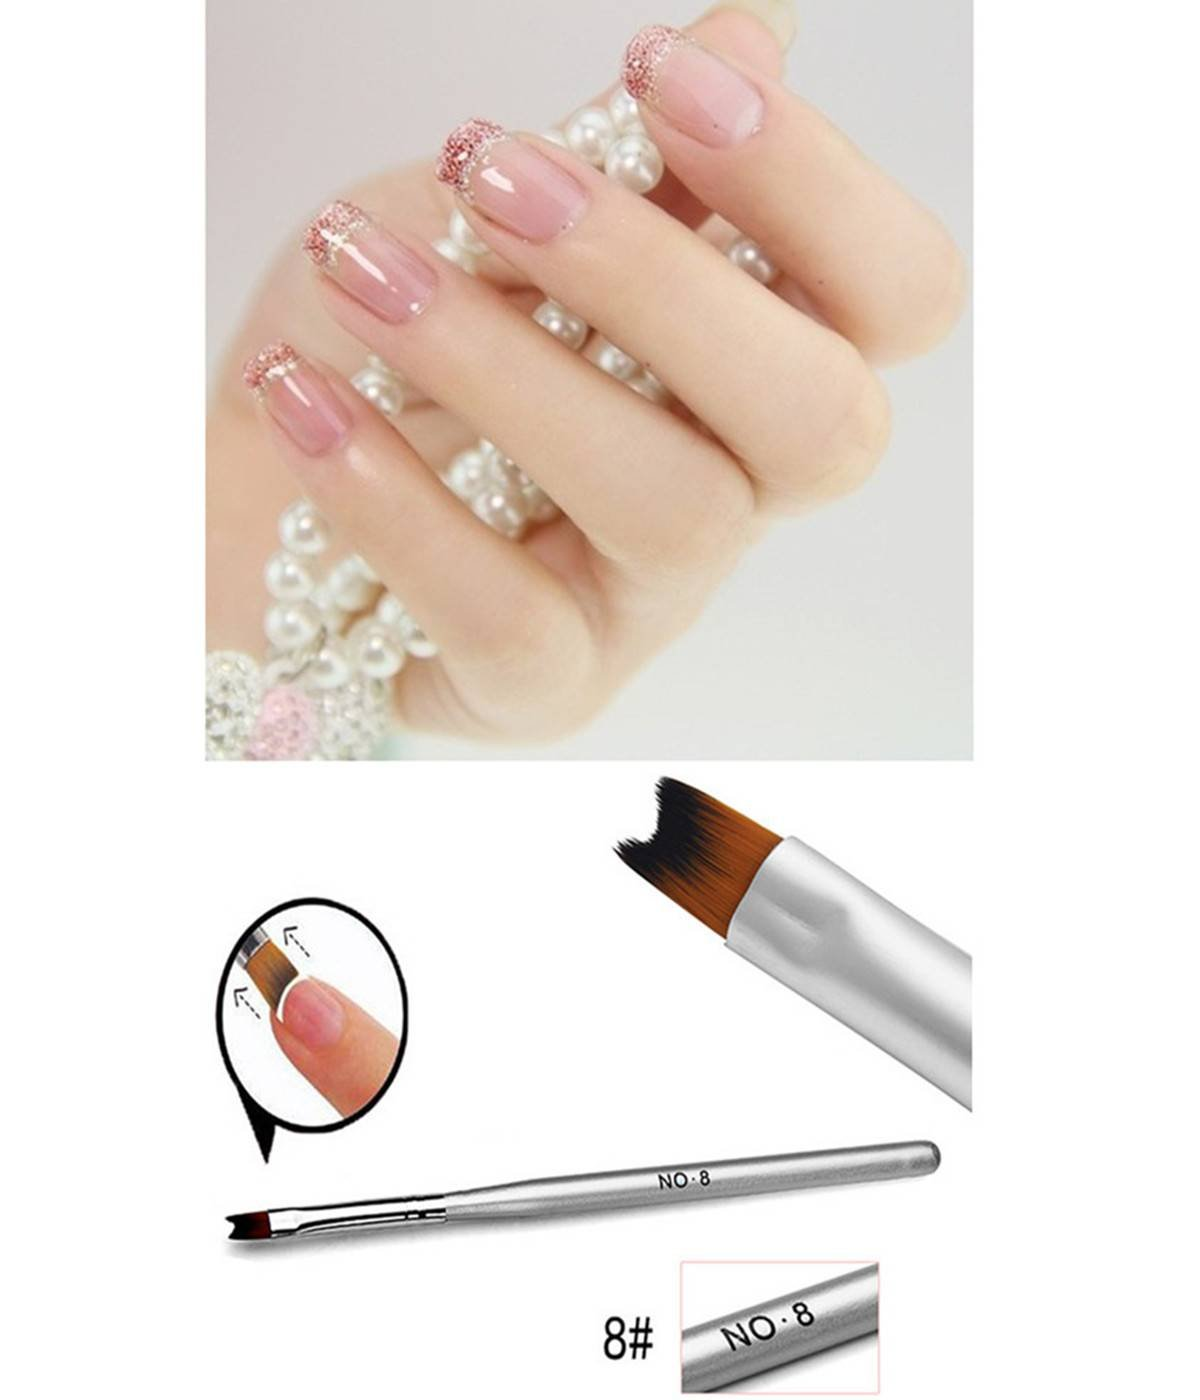 Dancingnail Professional Nail Painting Drawing Acrylic French Makeup Cosmetic Manicure Phototherapy Pen Brush Tool